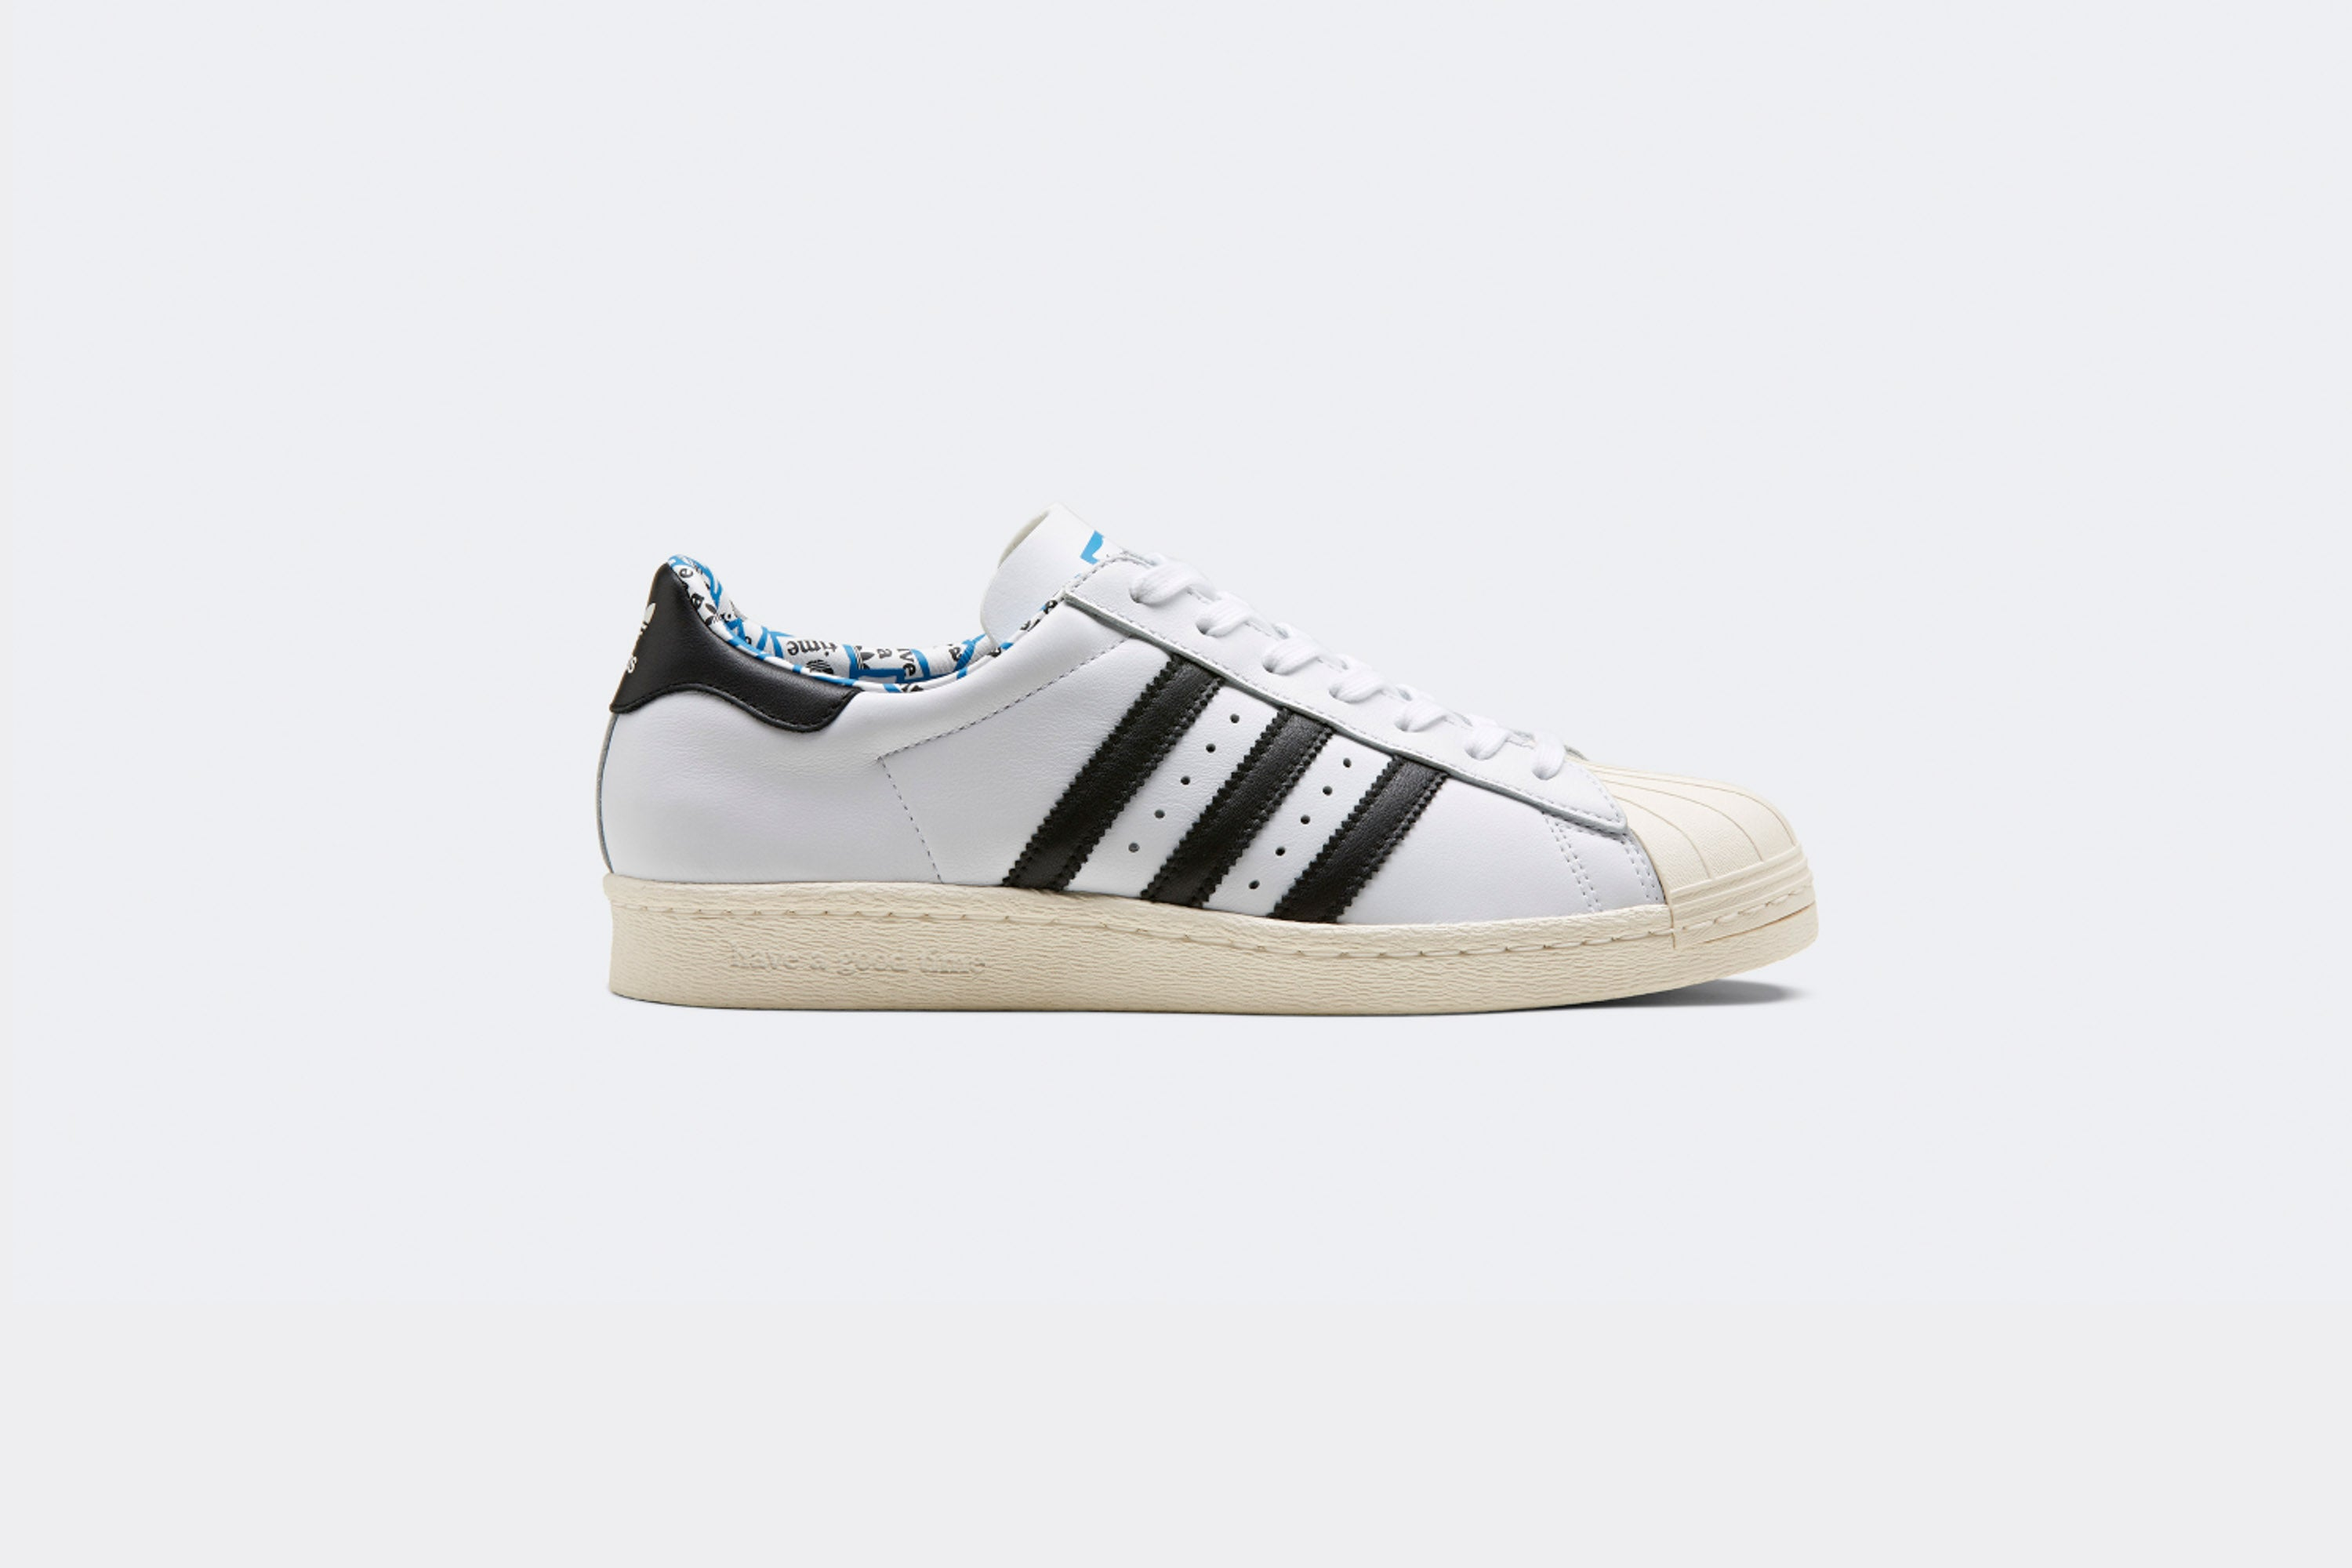 competitive price cea4d 63cf3 Have a Good Time x Adidas SUPERSTAR 80 S - Sneaker Politics